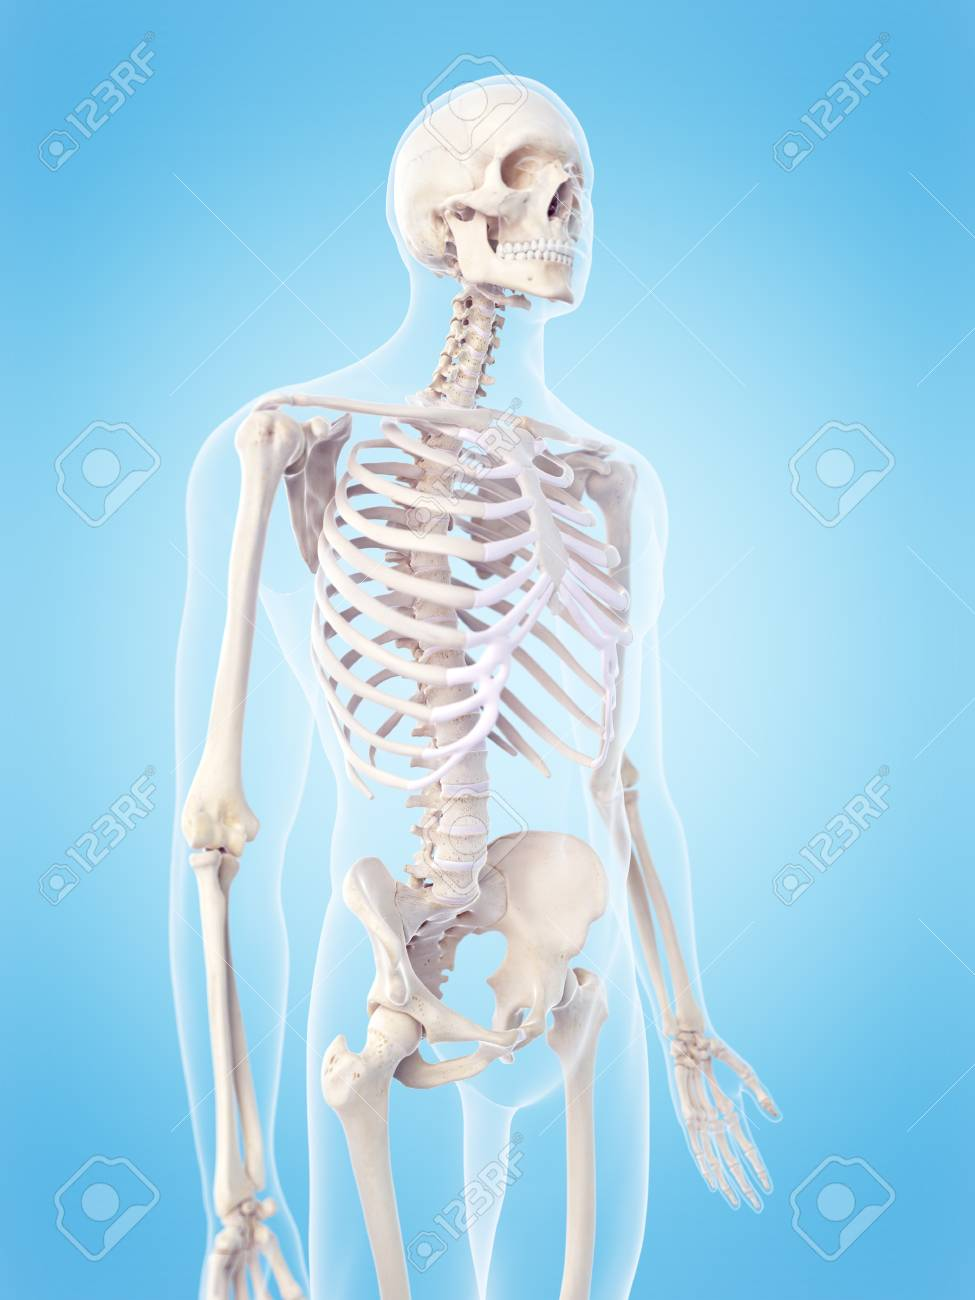 Human Skeletal Structure Illustration Stock Photo Picture And